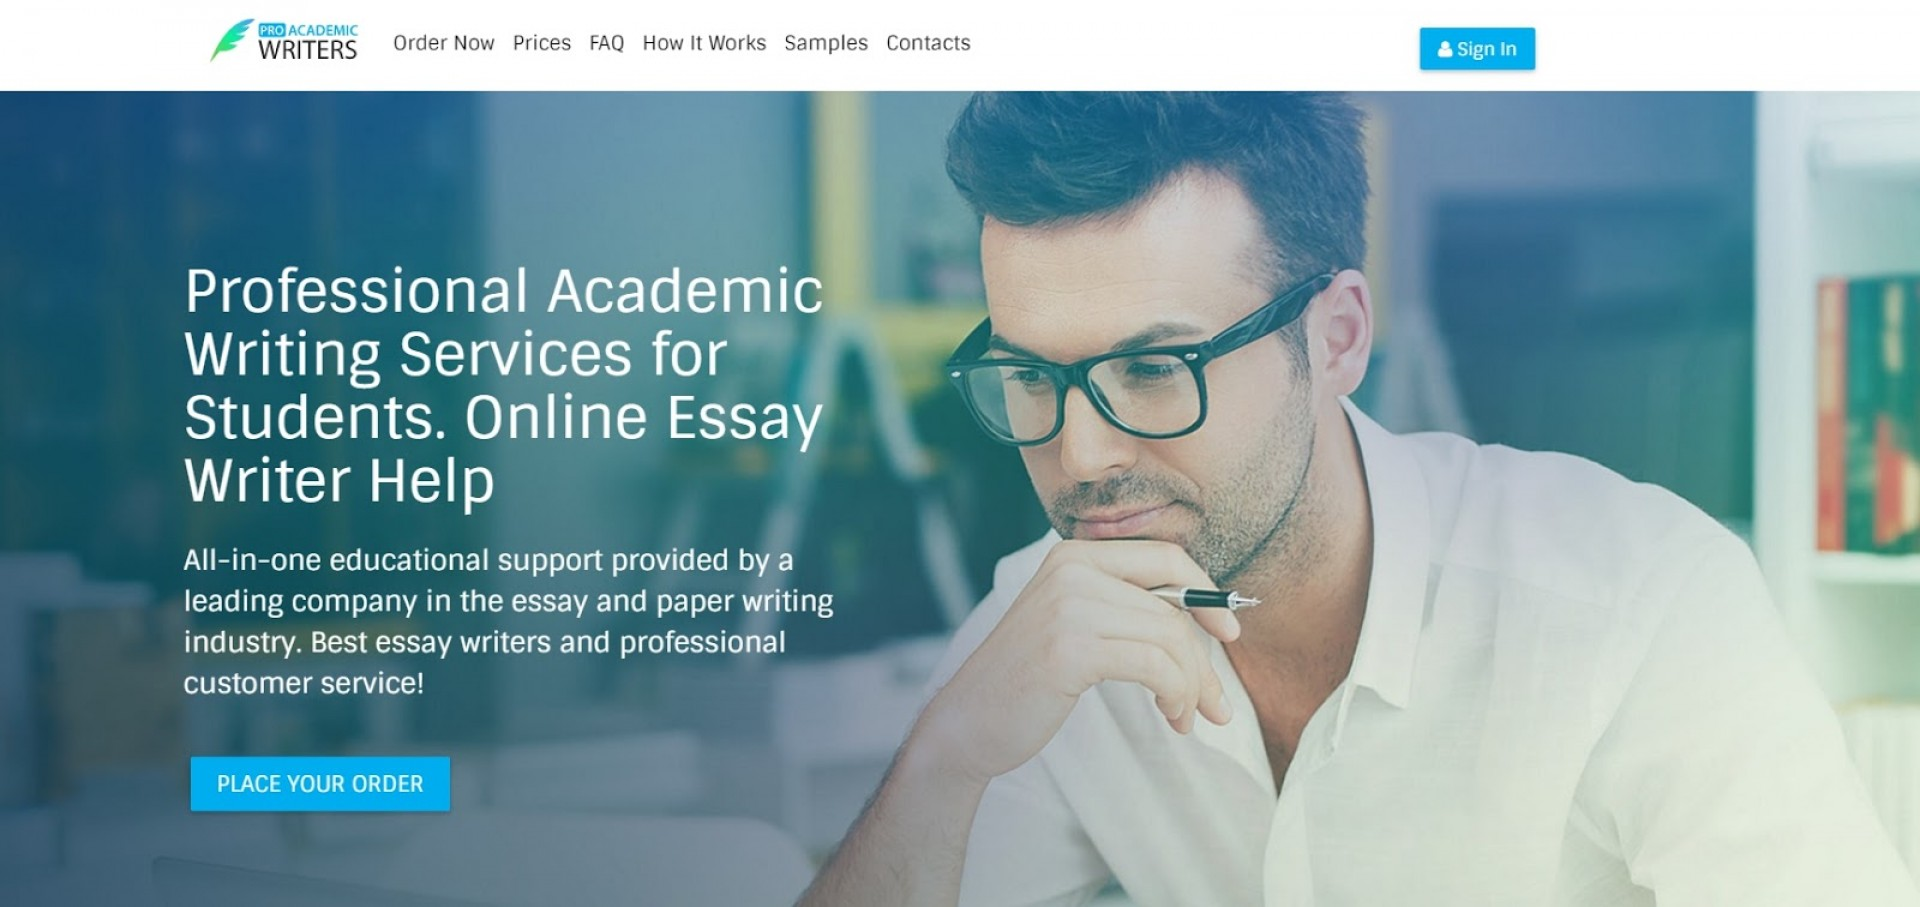 005 Pro Academic Writers Essay Writing Service Wondrous College Admission Free Draft Online 1920